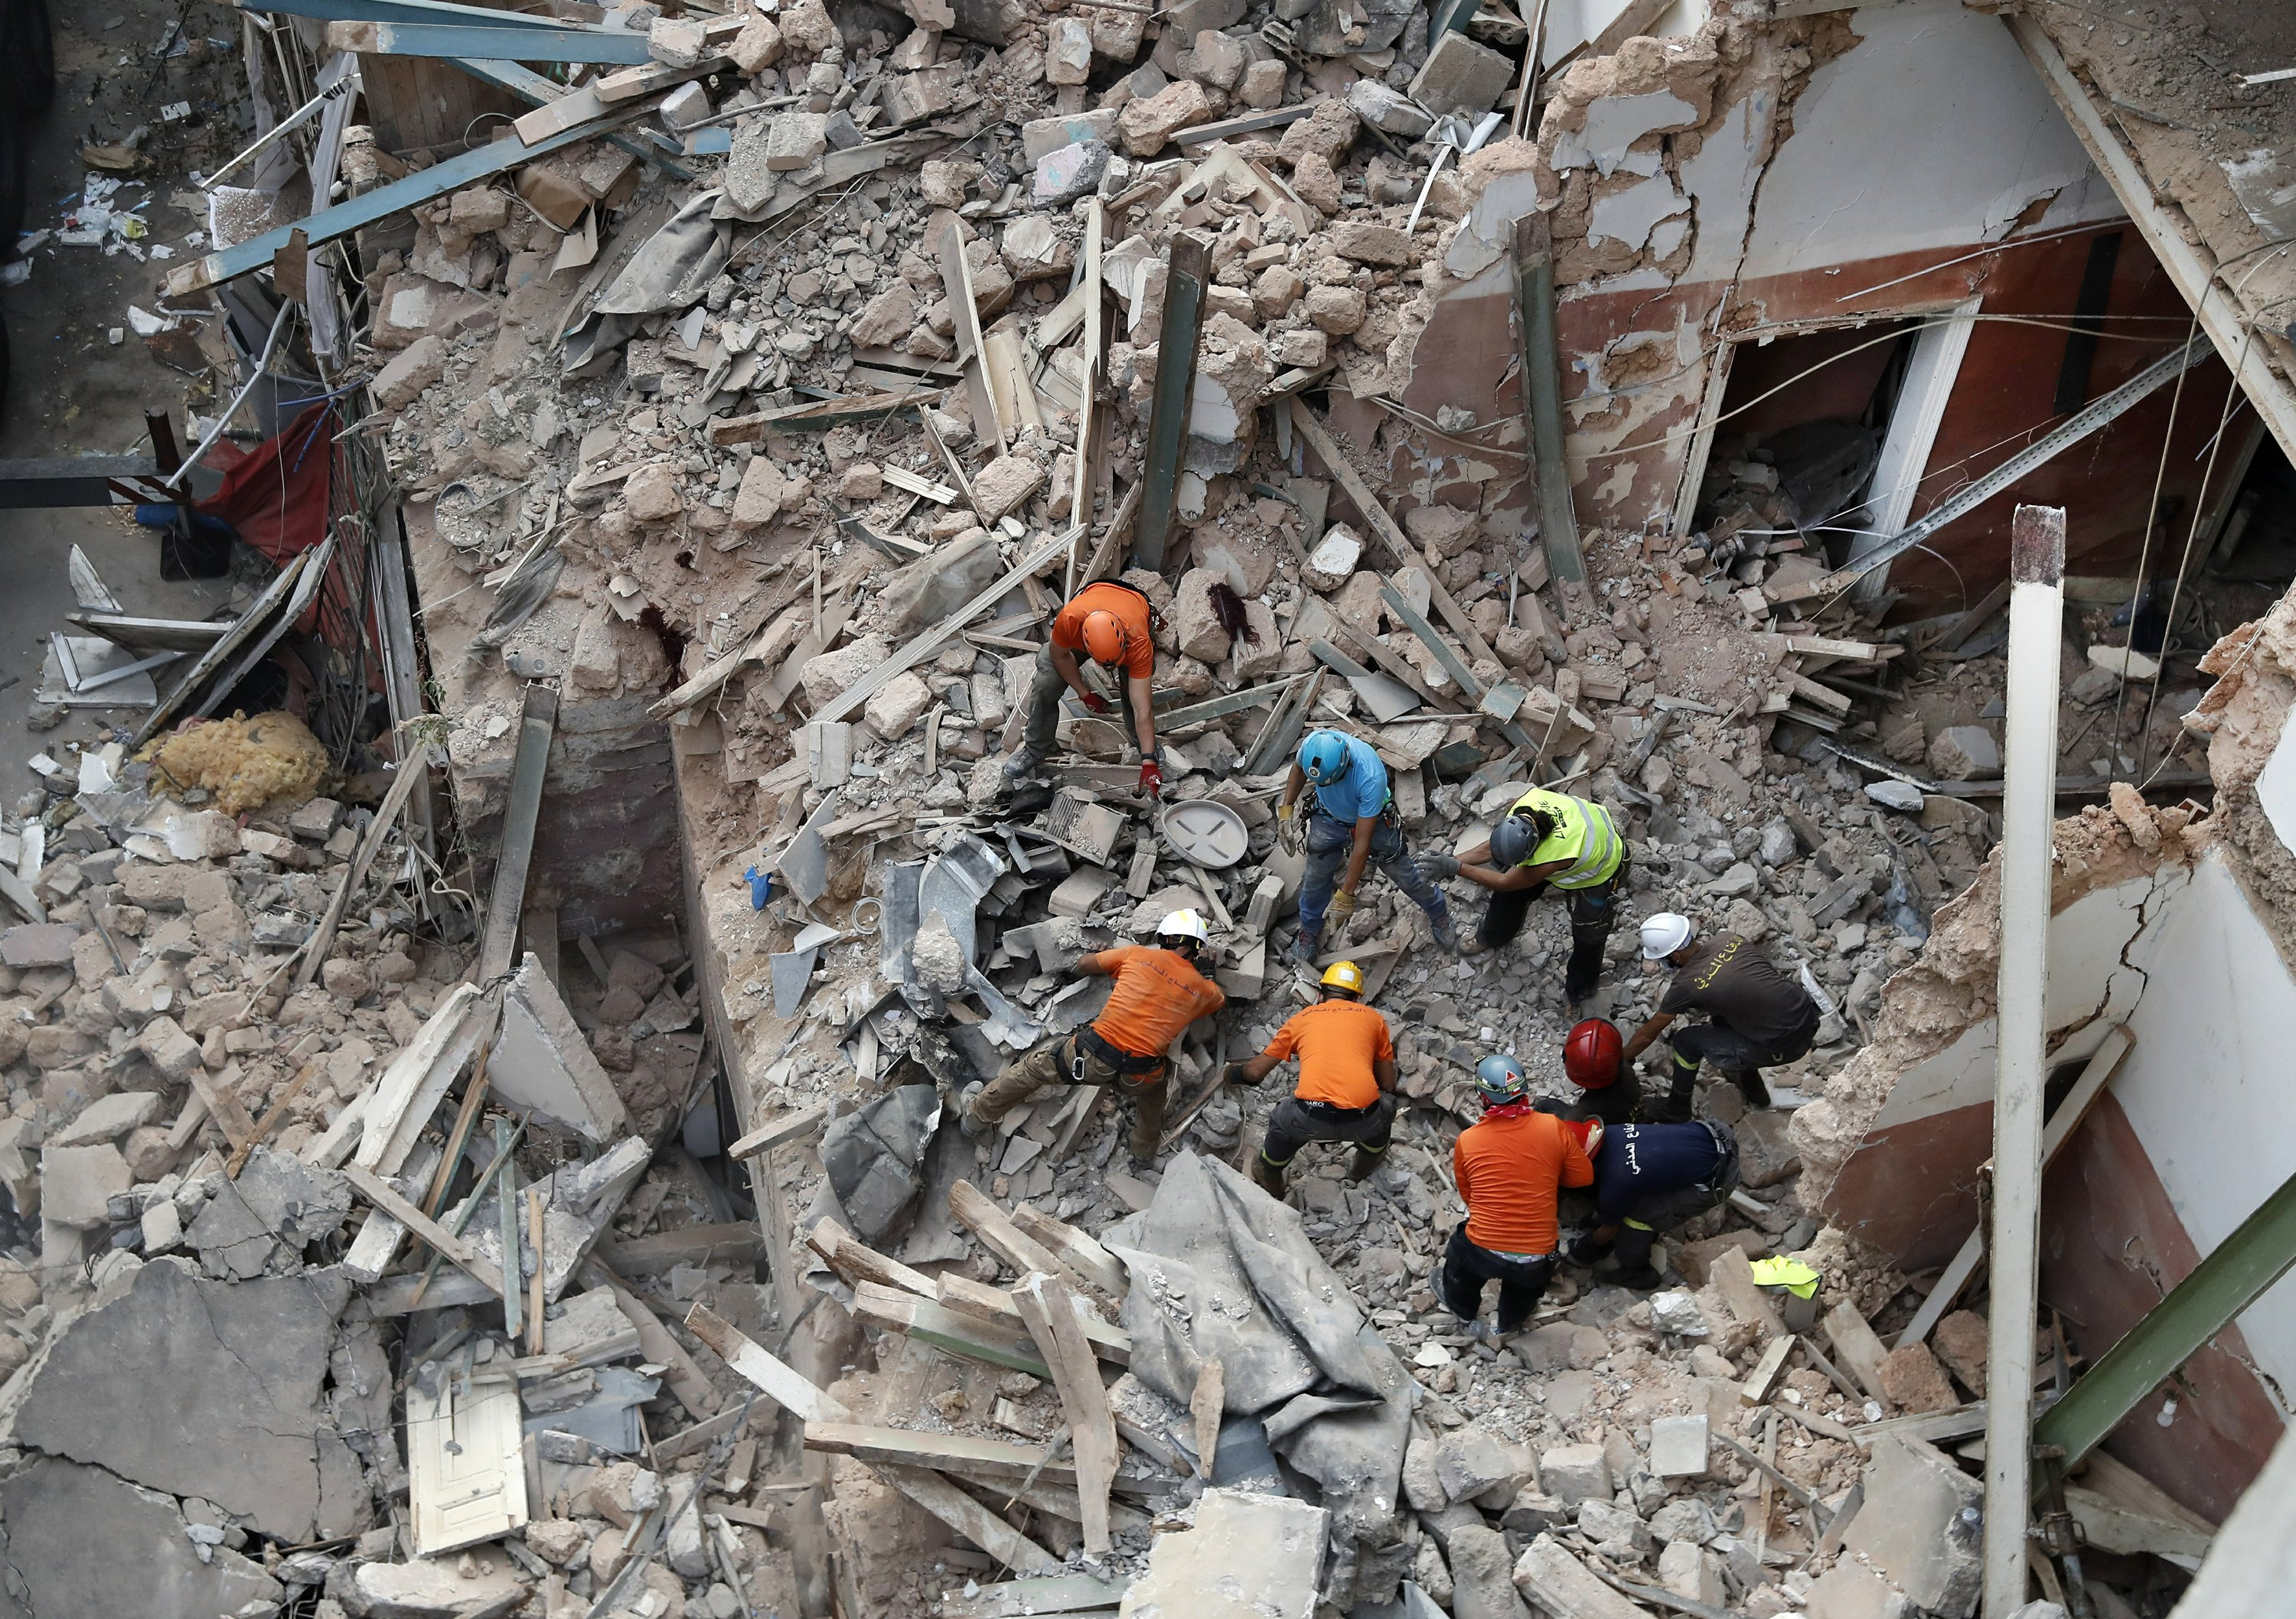 Rescue workers in Beirut hope to find survivor in rubble